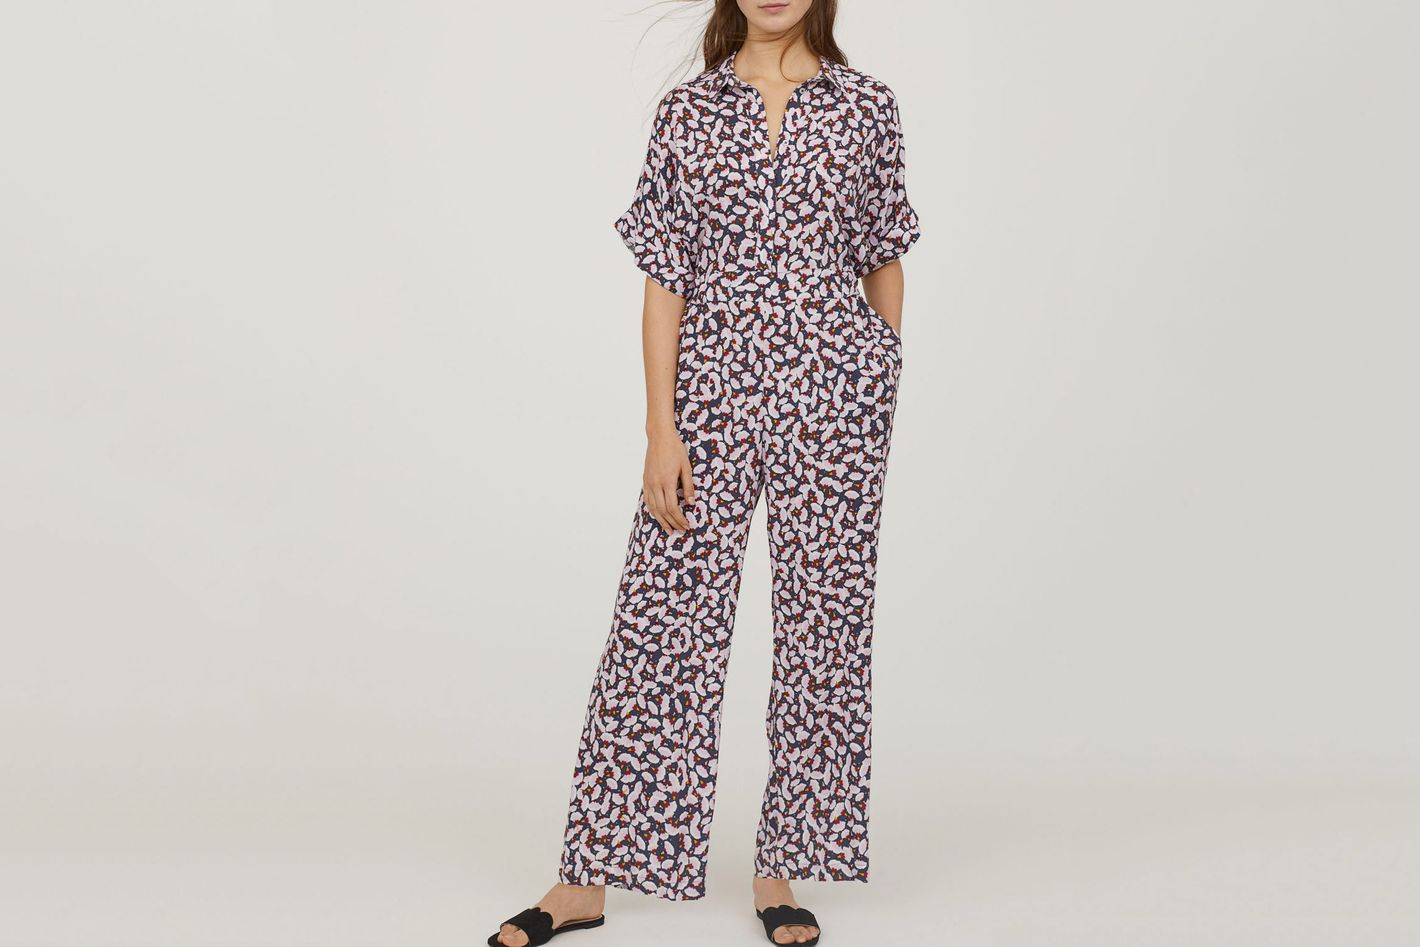 ANNA GLOVER X HM Patterned Jumpsuit